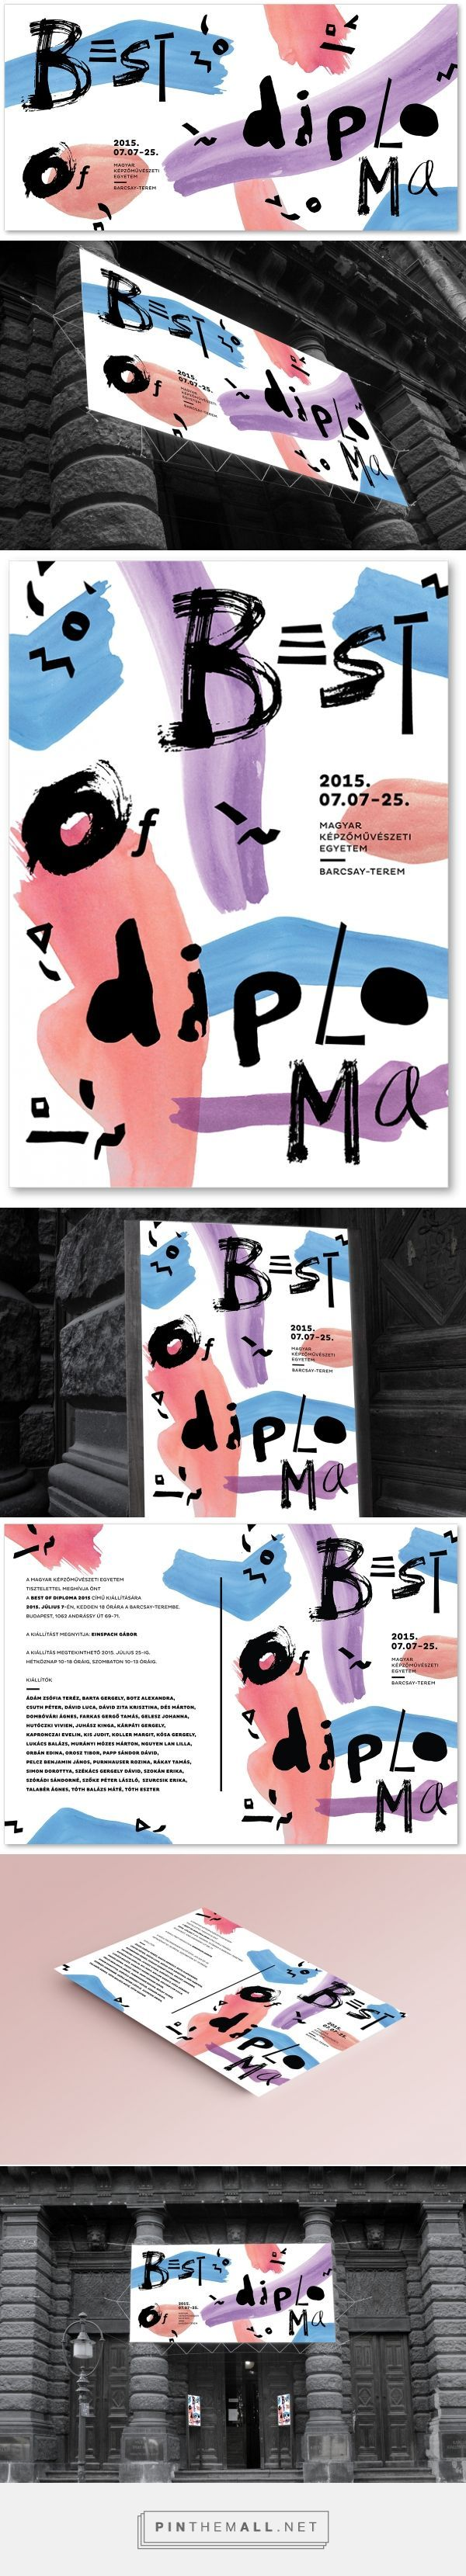 Best of Diploma 2015 Fine Arts Event Branding by Lili Thury | Fivestar Branding – Design and Branding Agency & Inspiration Gallery